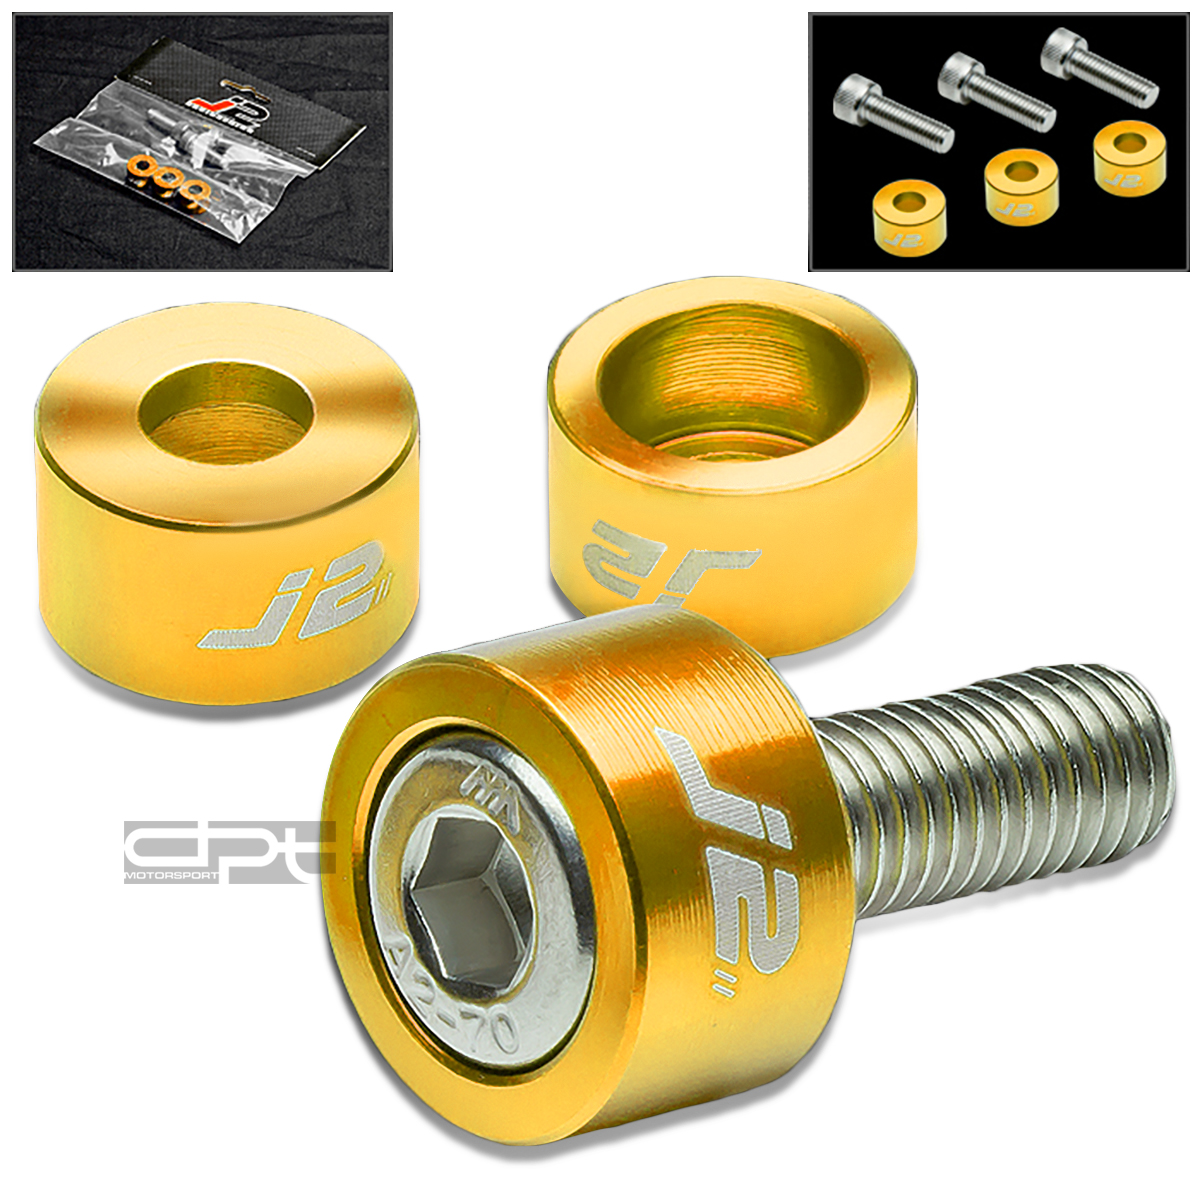 J2 ENGINE IGNITION DISTRIBUTOR METRIC CUP WASHER+BOLT/NUT KIT DC2/AP1/AP2 GOLD